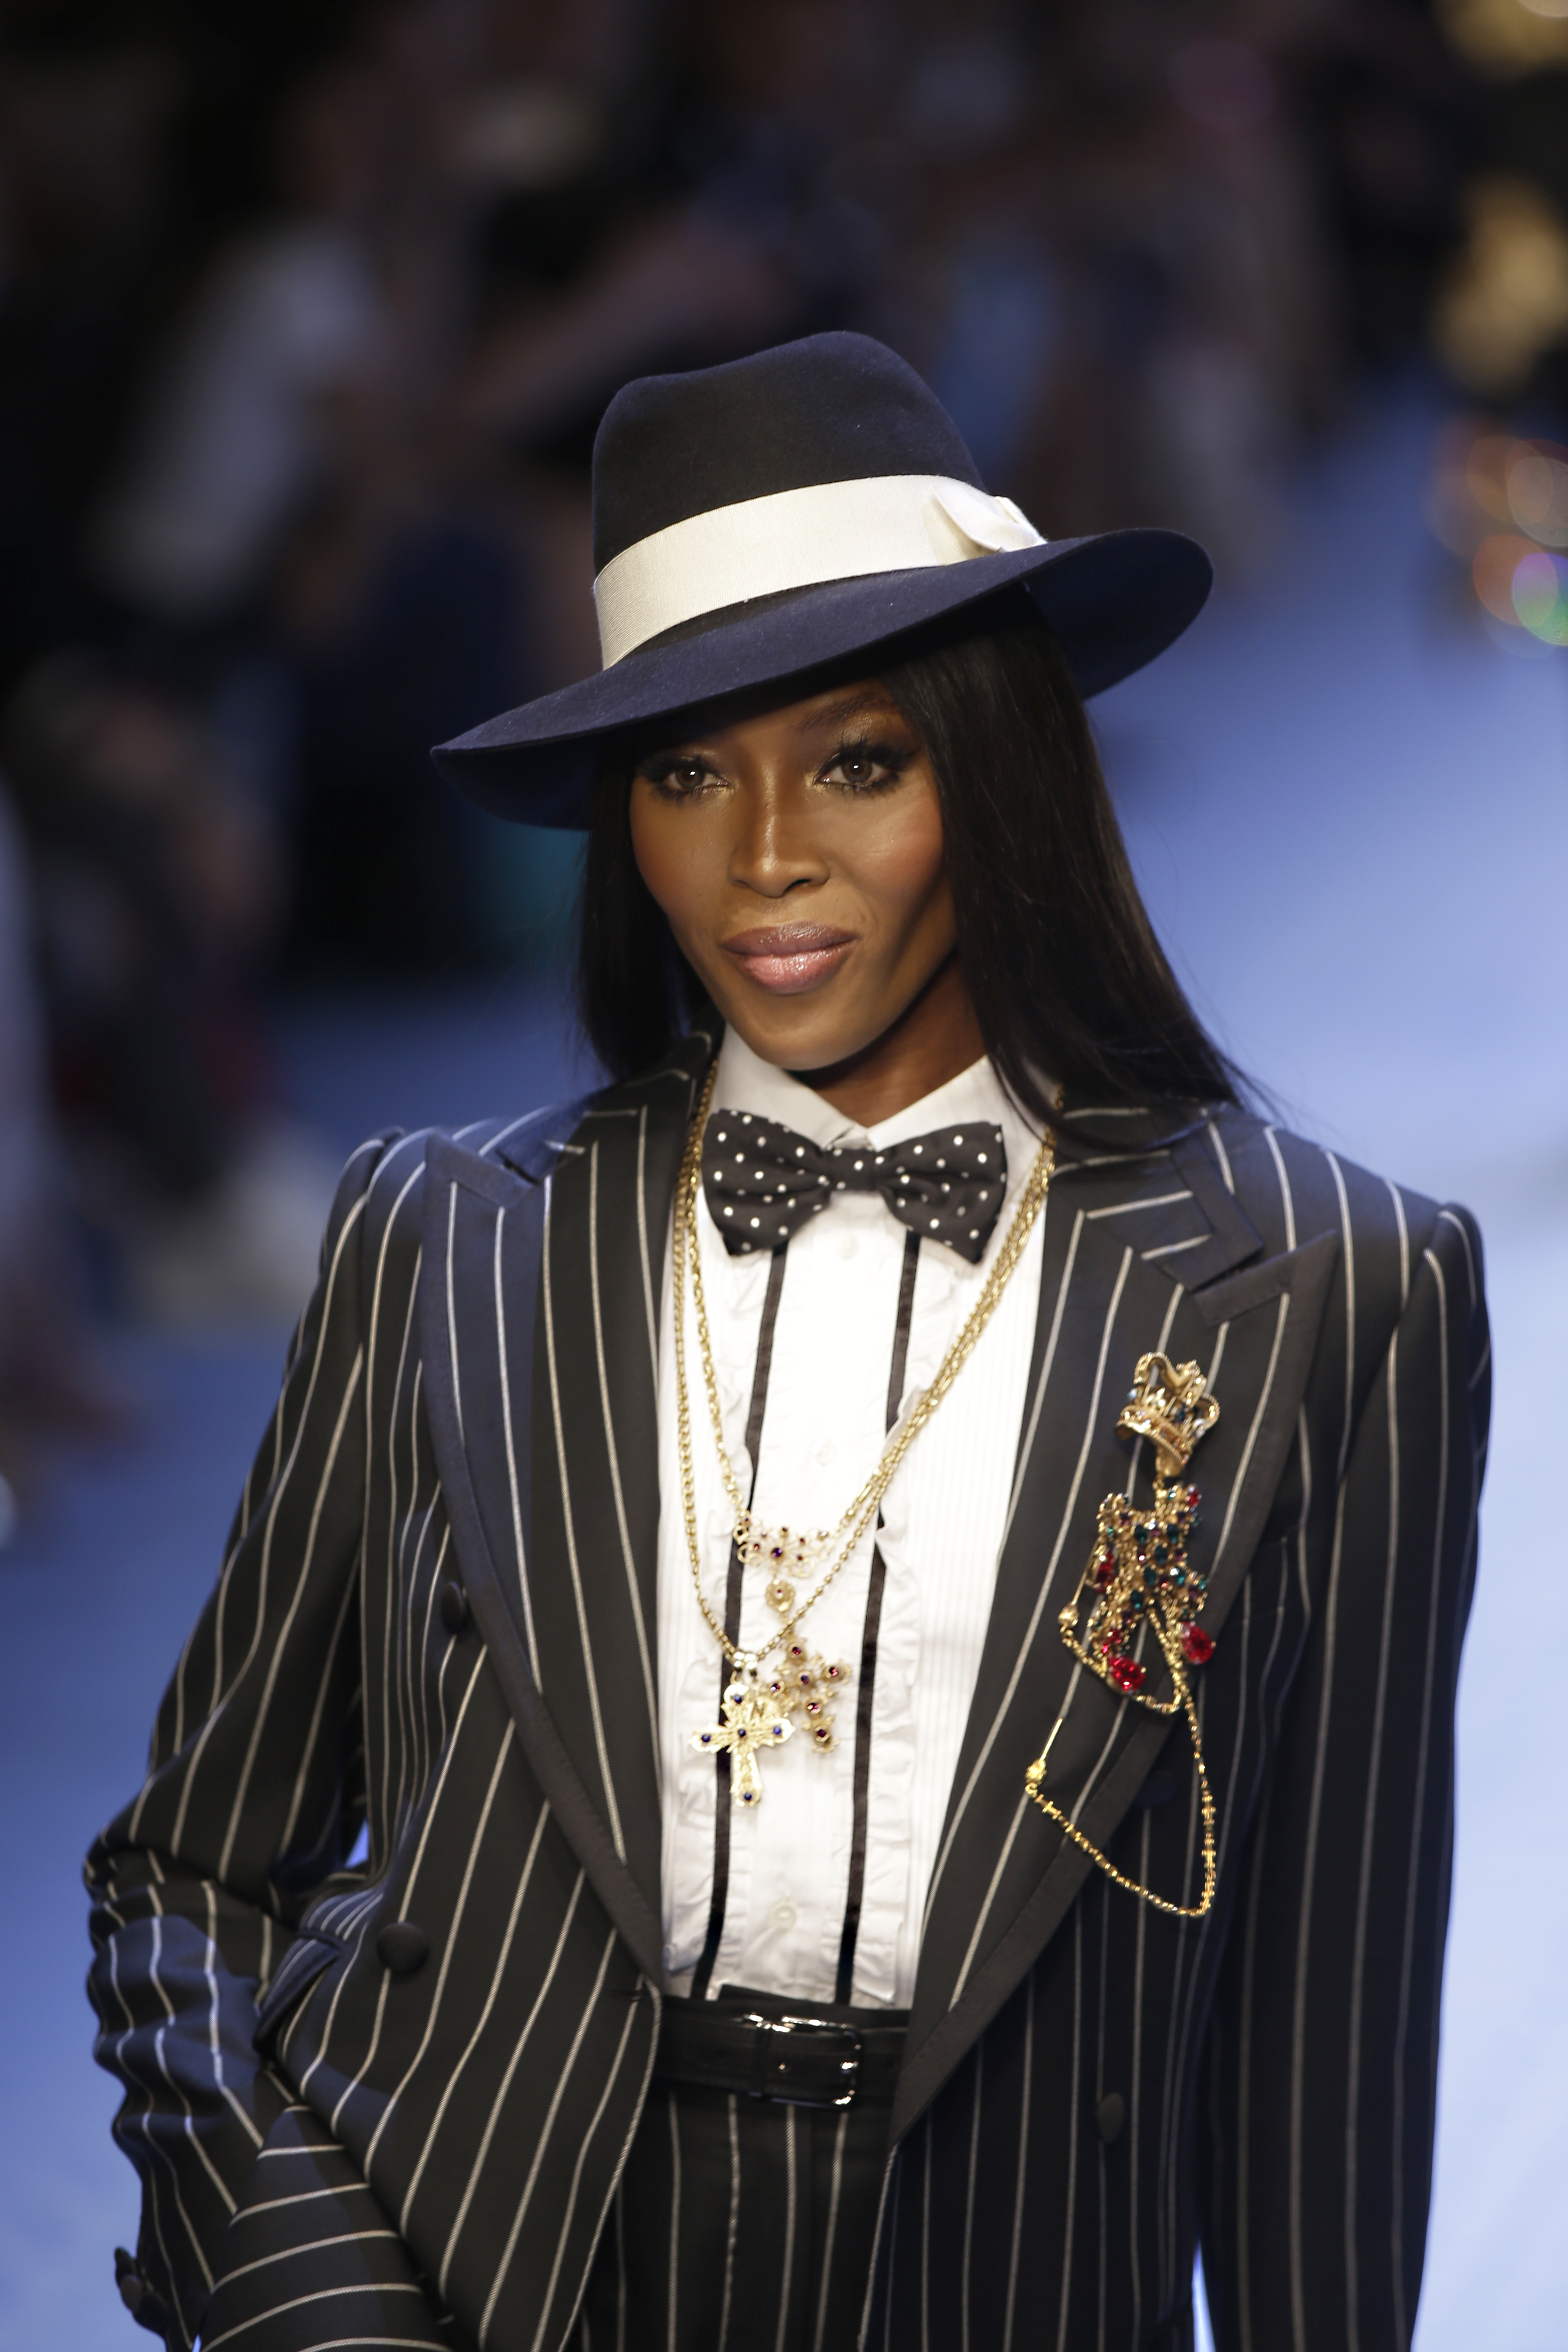 Naomi Campbell in the D&G show